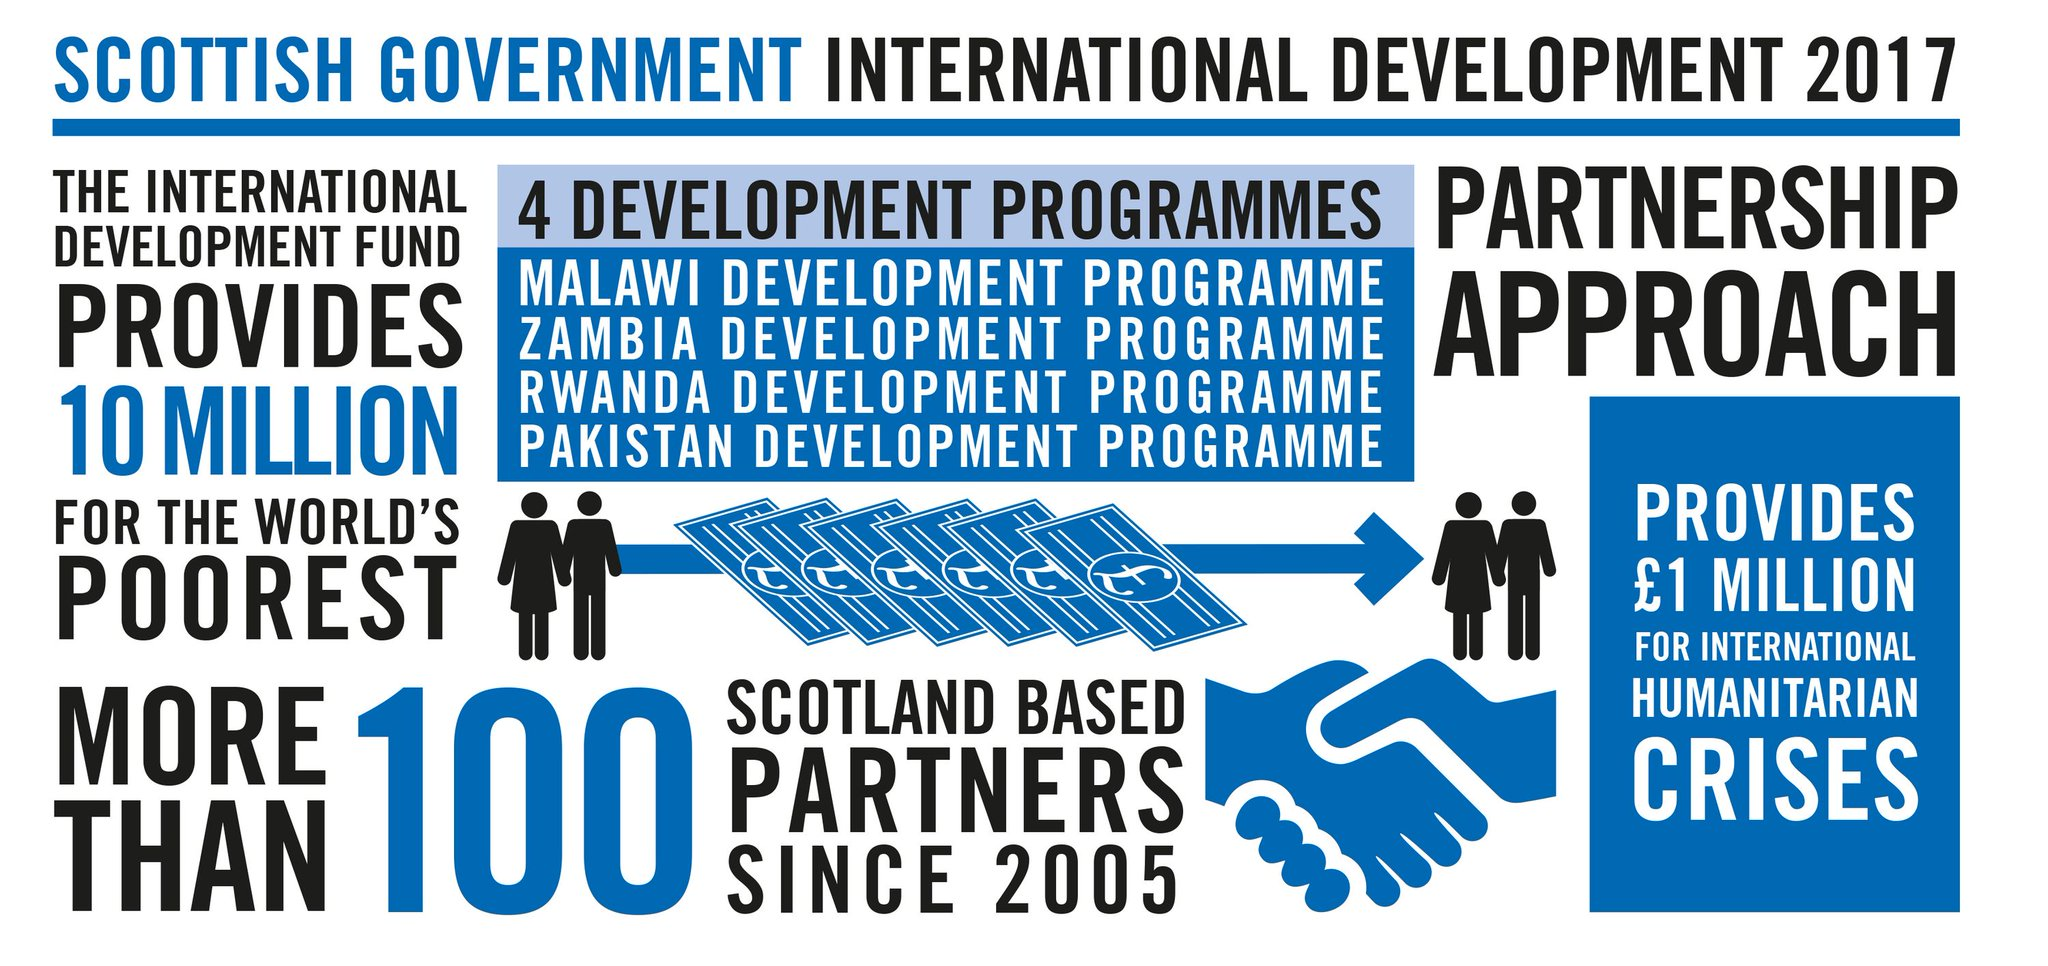 .@alasdairallan presents @scotgov new International Development Strategy to @ScotParl https://t.co/0RIZfng0MV